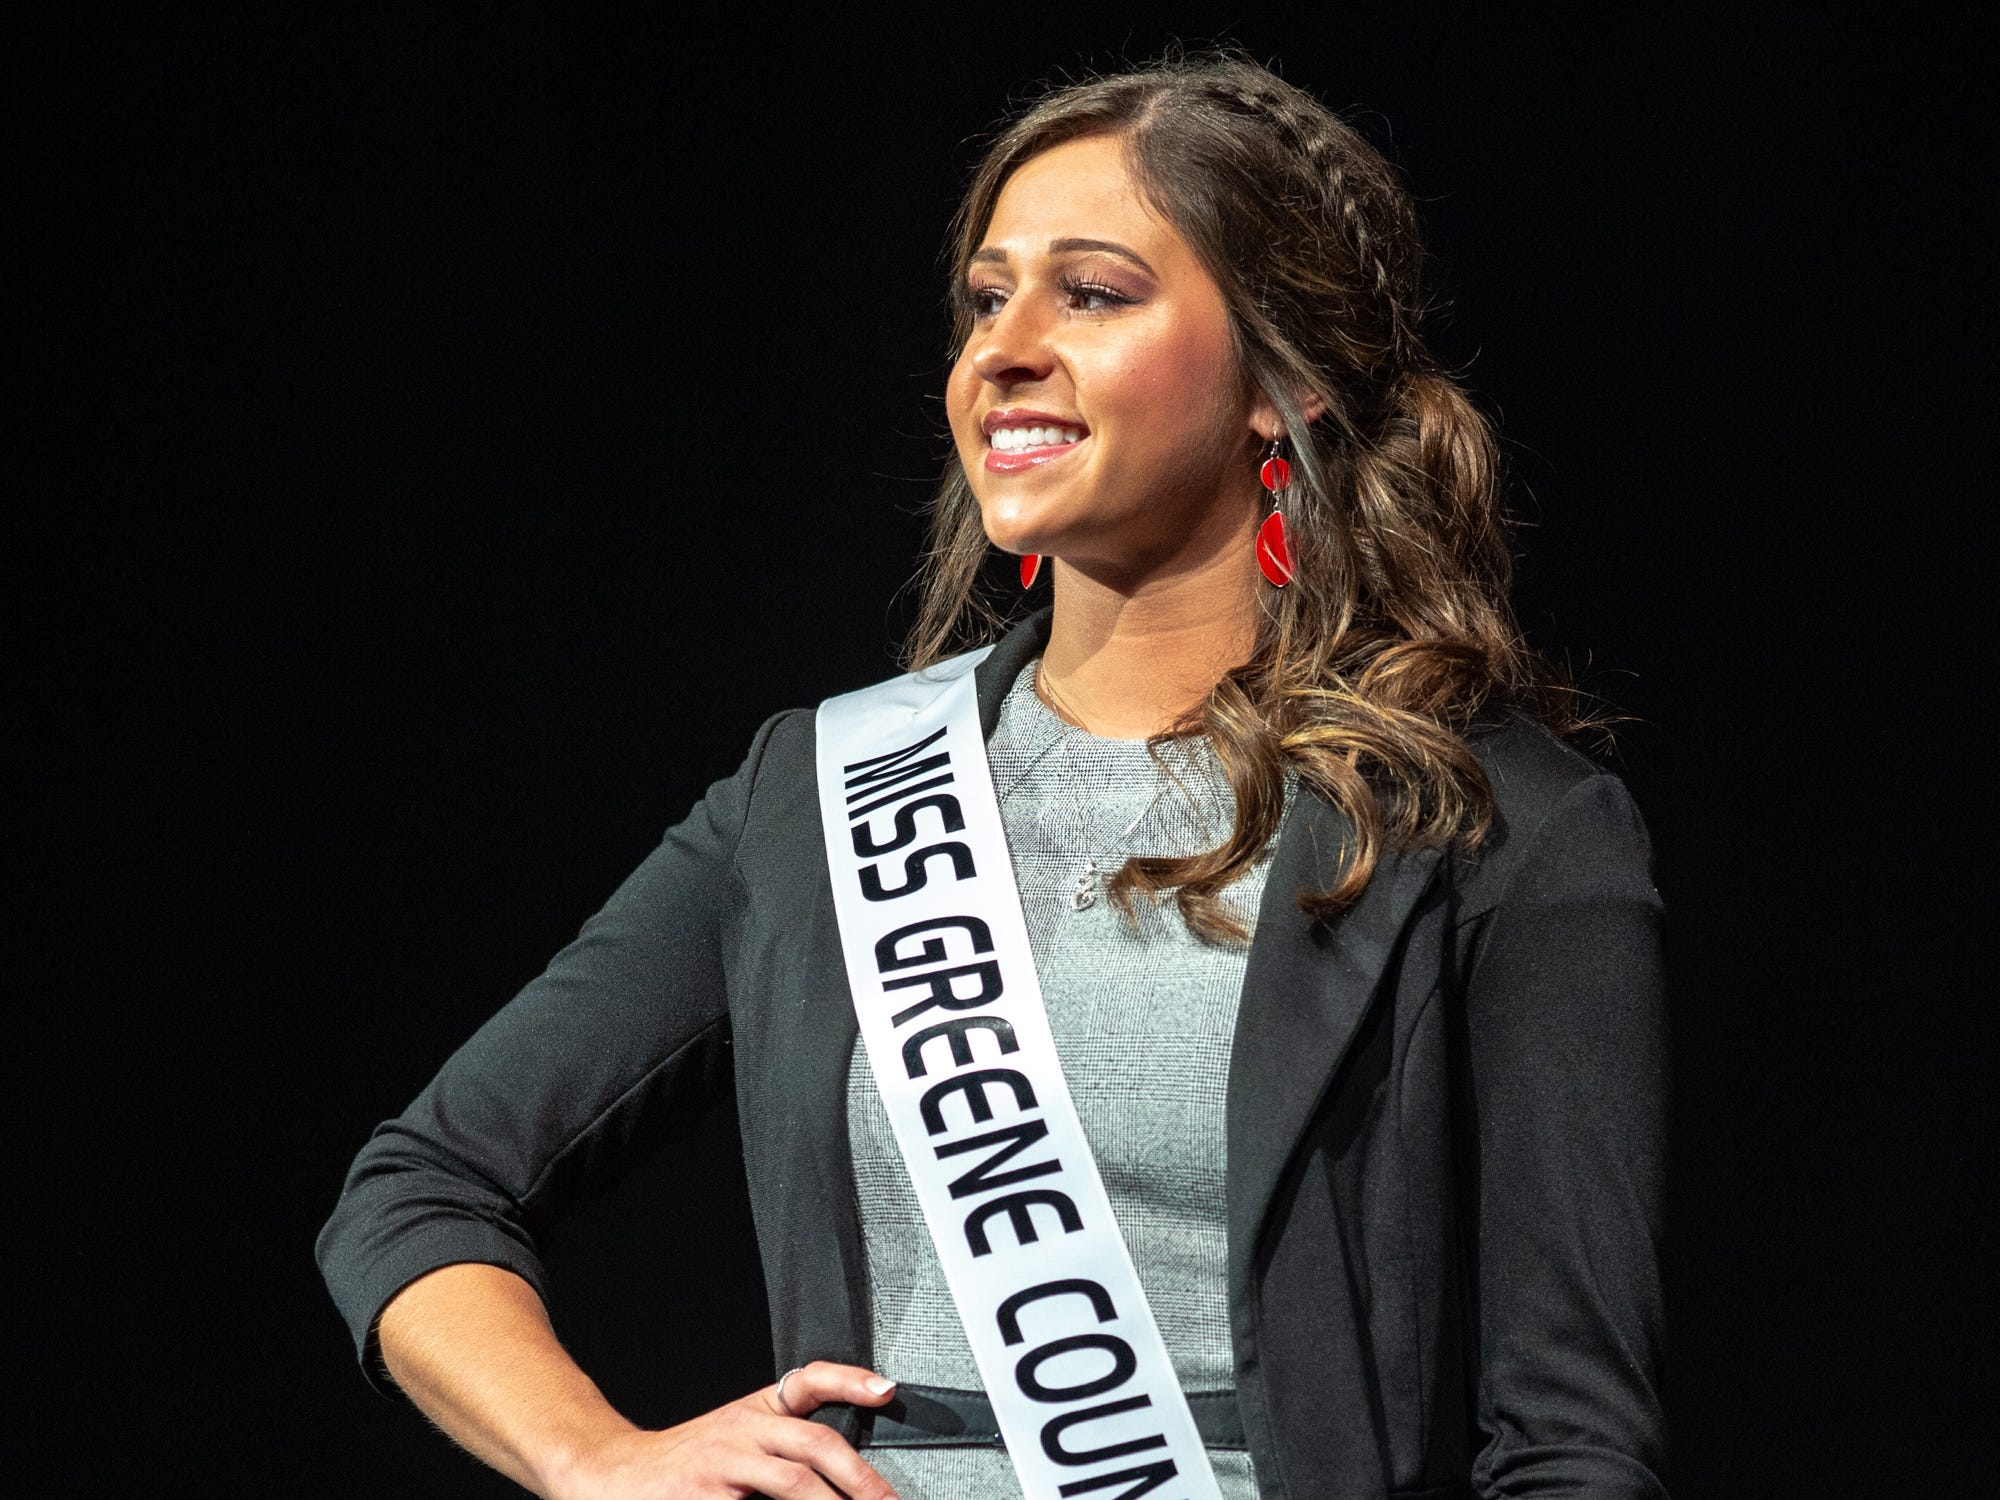 Miss Greene County, Skylar Tucker, during the 61st Indiana State Fair Queen Pageant at the Indiana State Fairgrounds in Indianapolis, Sunday, Jan. 6, 2019. Miss Benton County, Halle Shoults, was crowned the 2019 Indiana State Fair Queen.